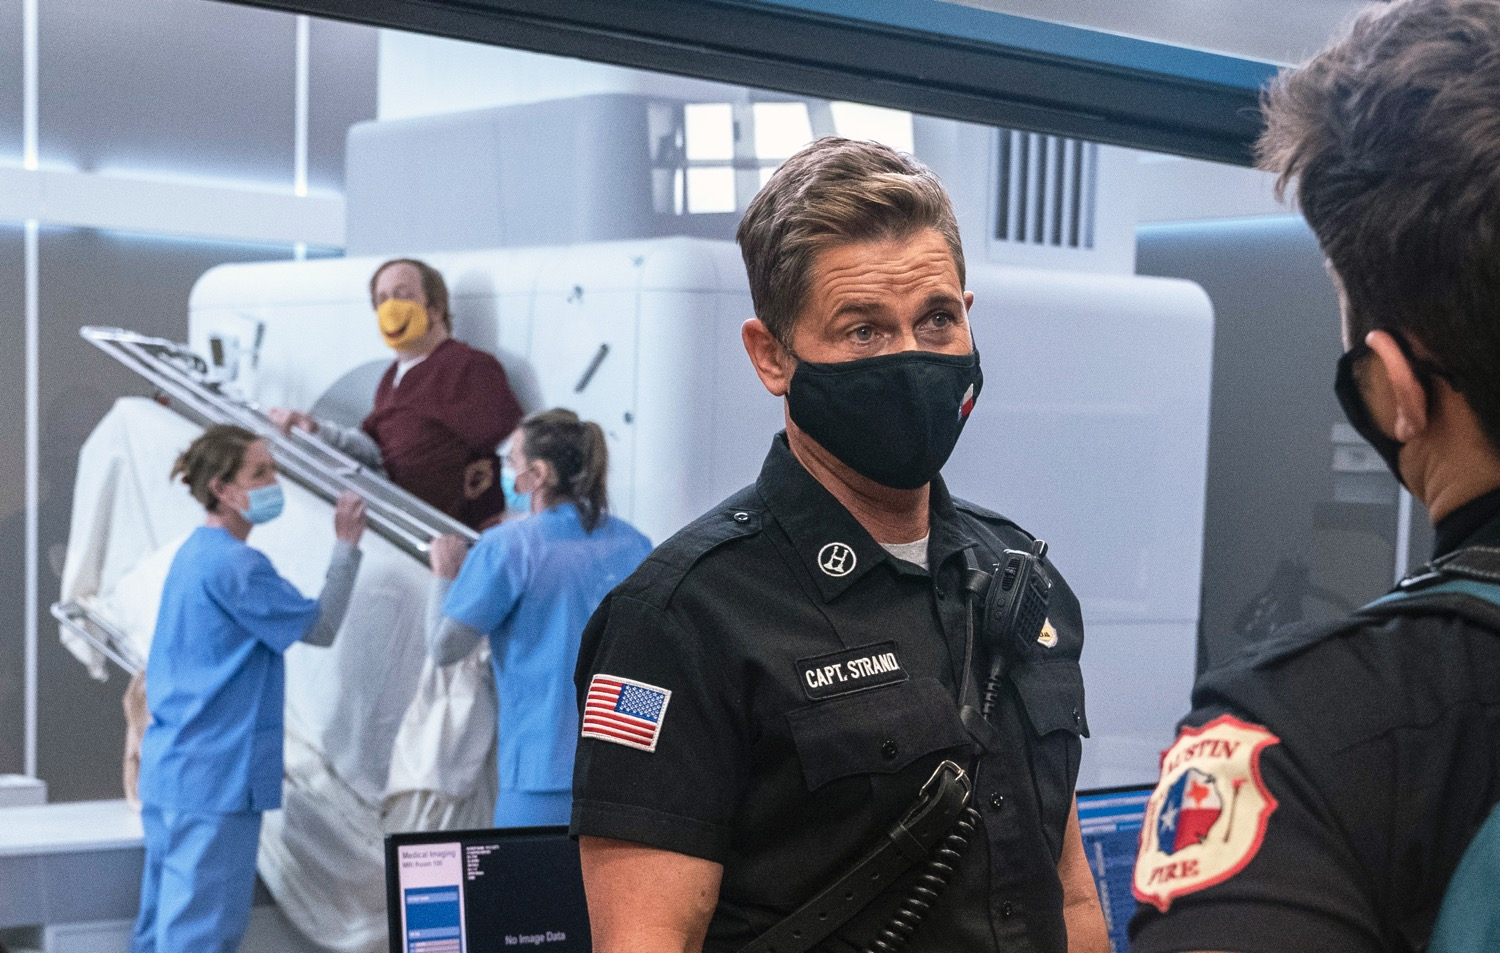 """9-1-1 LONE STAR Season 2 Episode 7 : Rob Lowe in the """"Displaced"""" episode of 9-1-1: LONE STAR airing Monday, March 1 (9:01-10:00 PM ET/PT) on FOX. © 2021 Fox Media LLC. CR: Jack Zeman/FOX."""